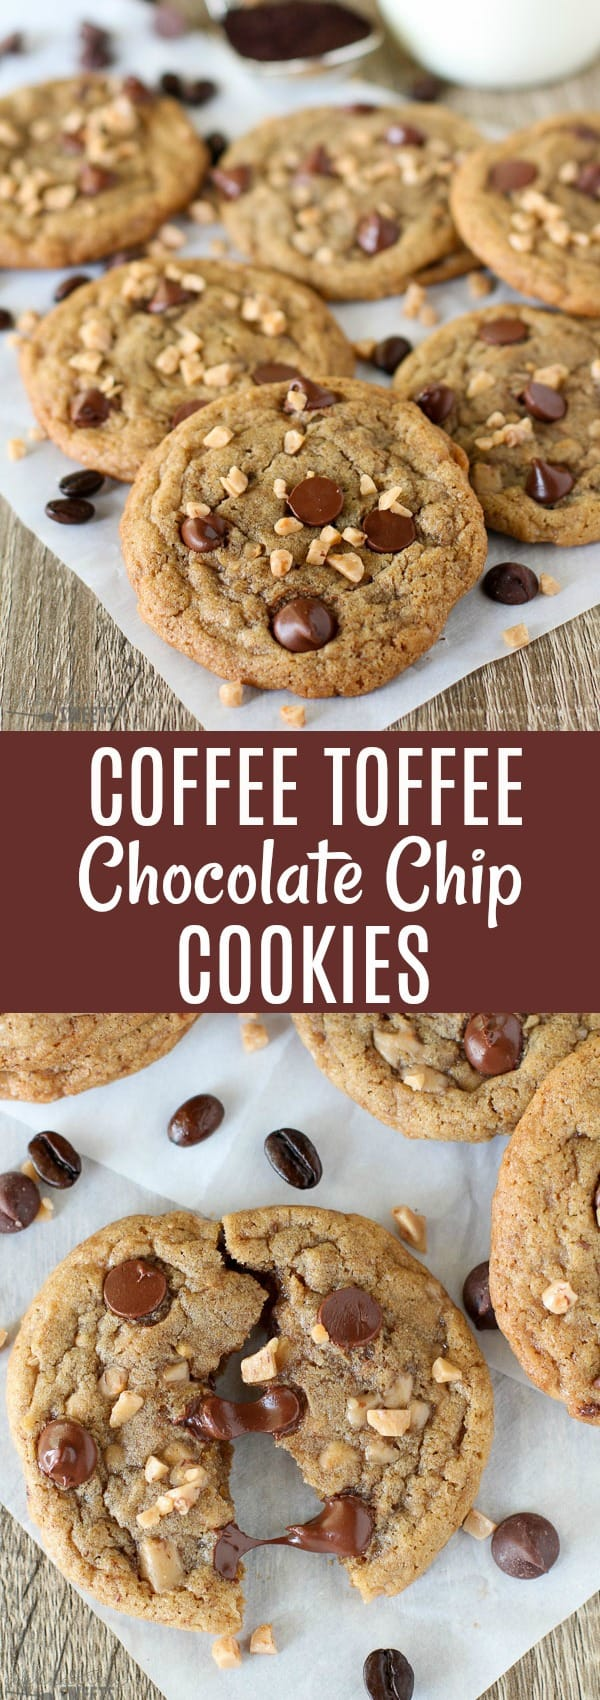 Toffee Chocolate Chip Cookies Nutrition